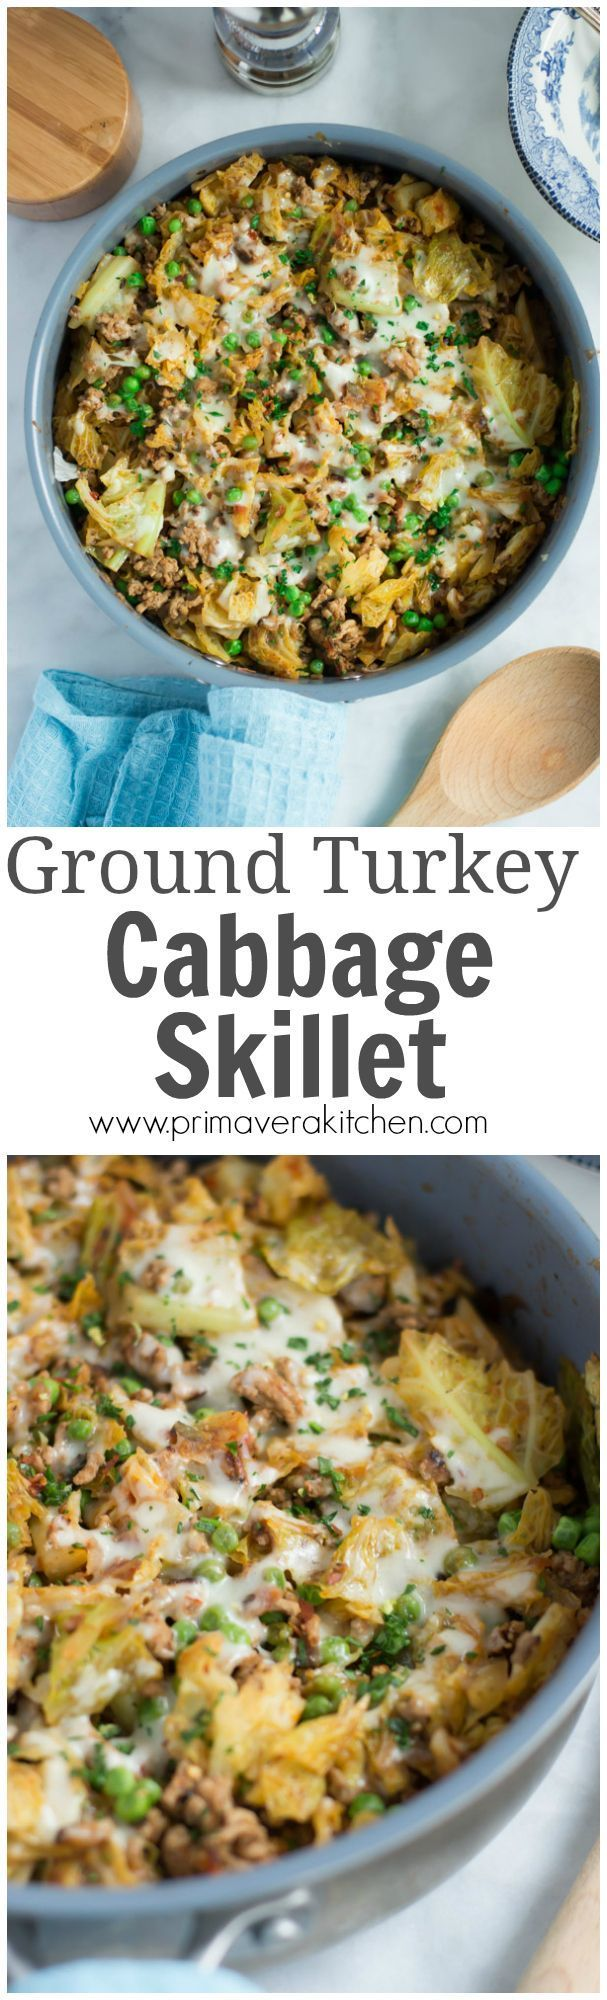 Ground Turkey Cabbage Skillet - This very easy Ground Turkey Cabbage Skillet recipe is perfect for a quick dinner during the week cause it takes less than 30mins to be ready! It is also gluten-free and very flavourful.